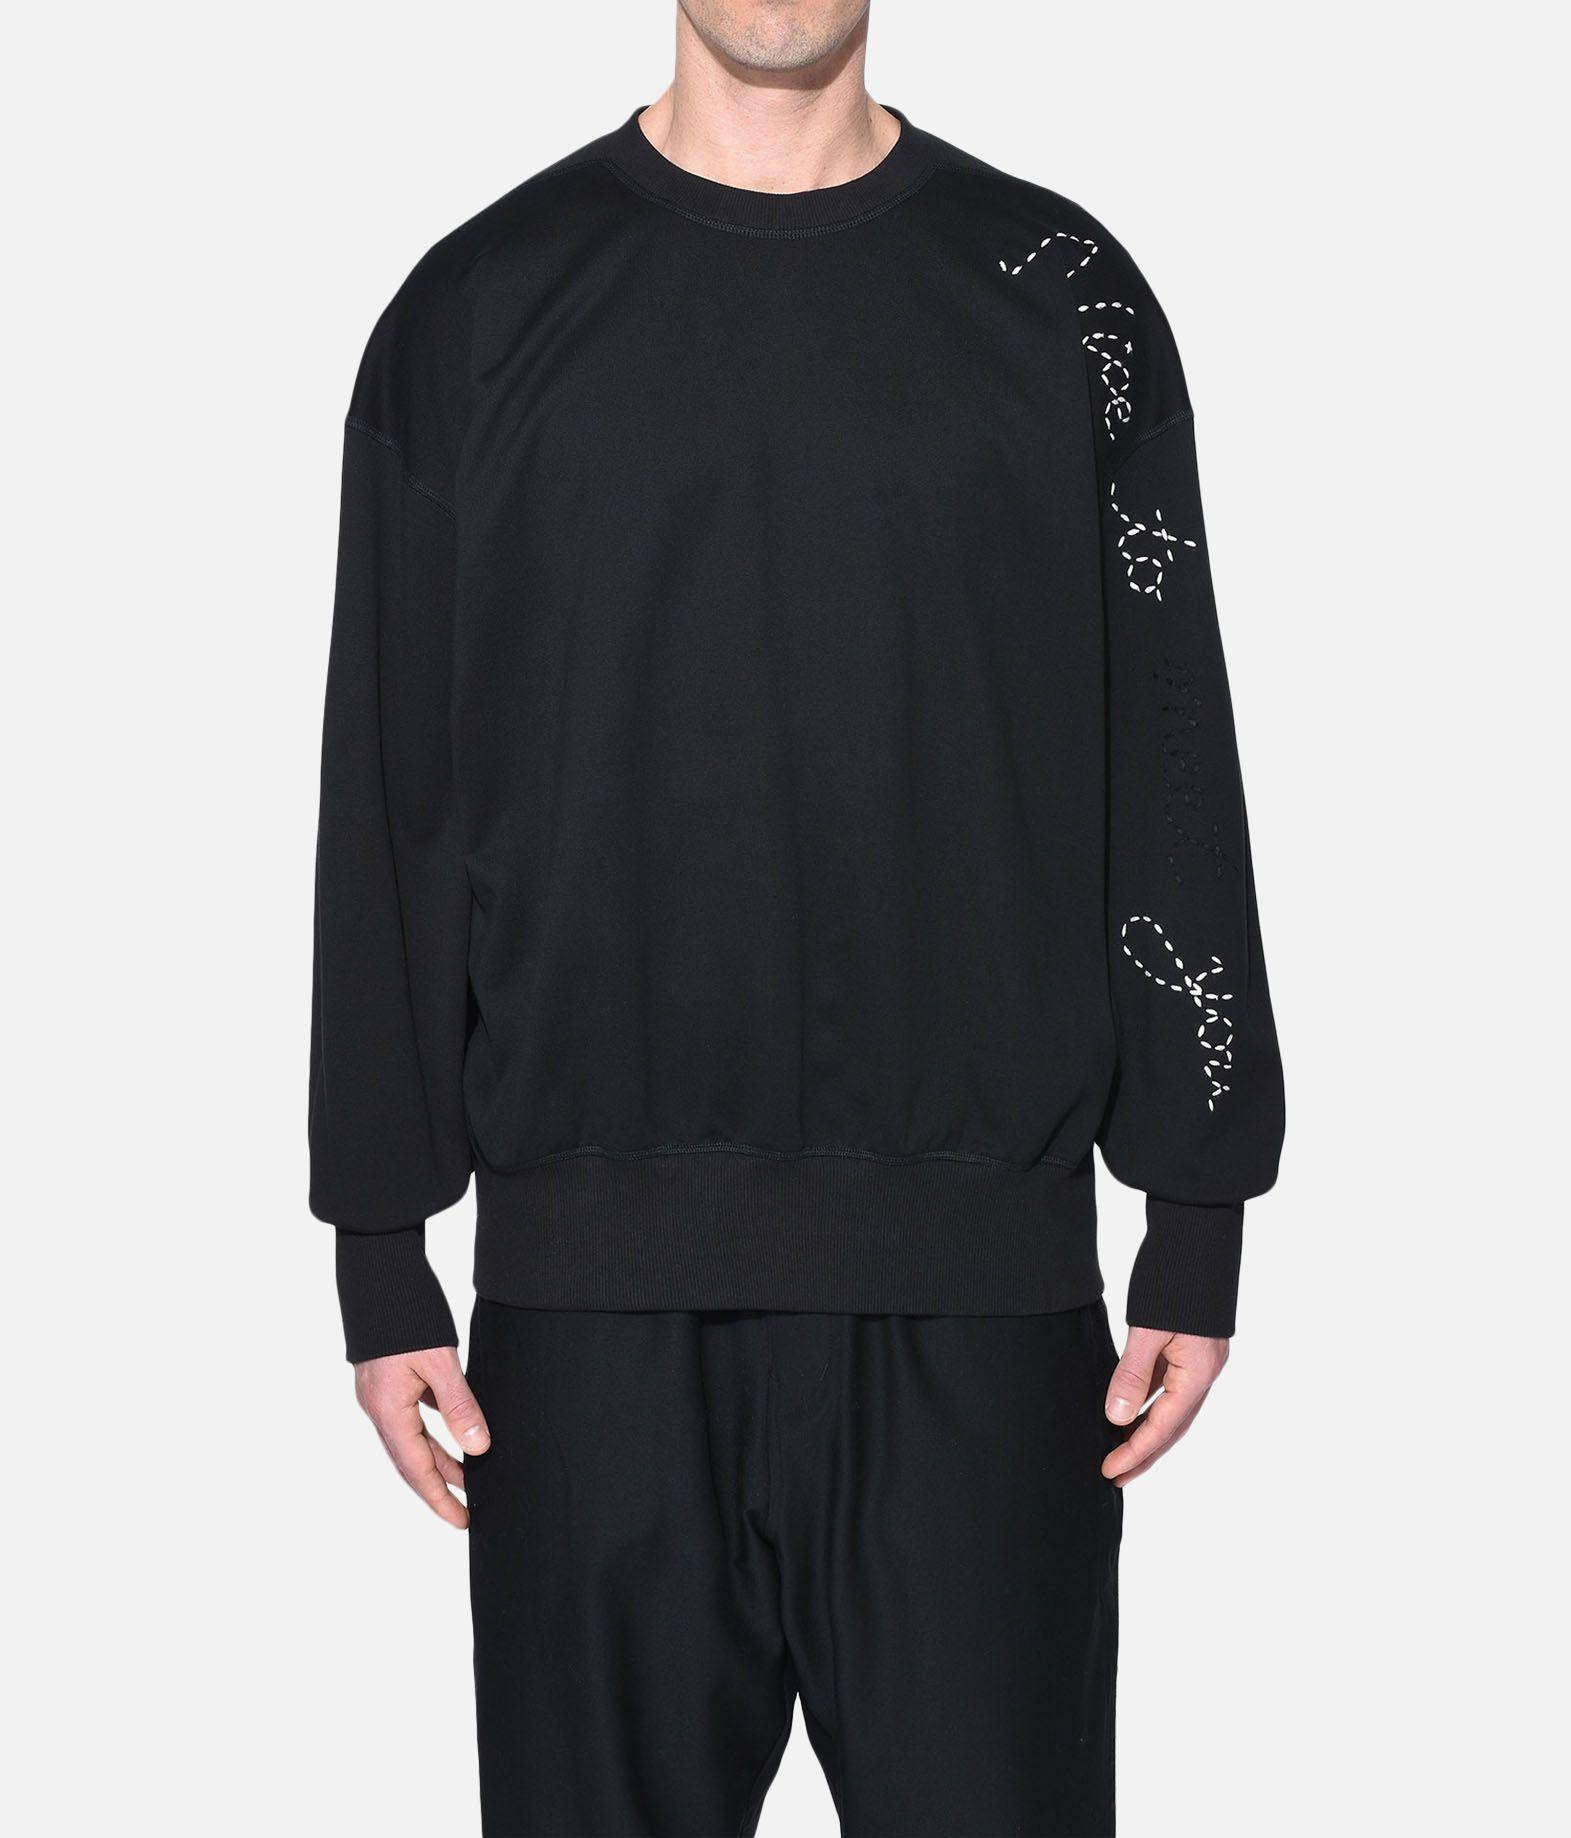 Y-3 Y-3 Sashiko Slogan Sweater スウェット メンズ r